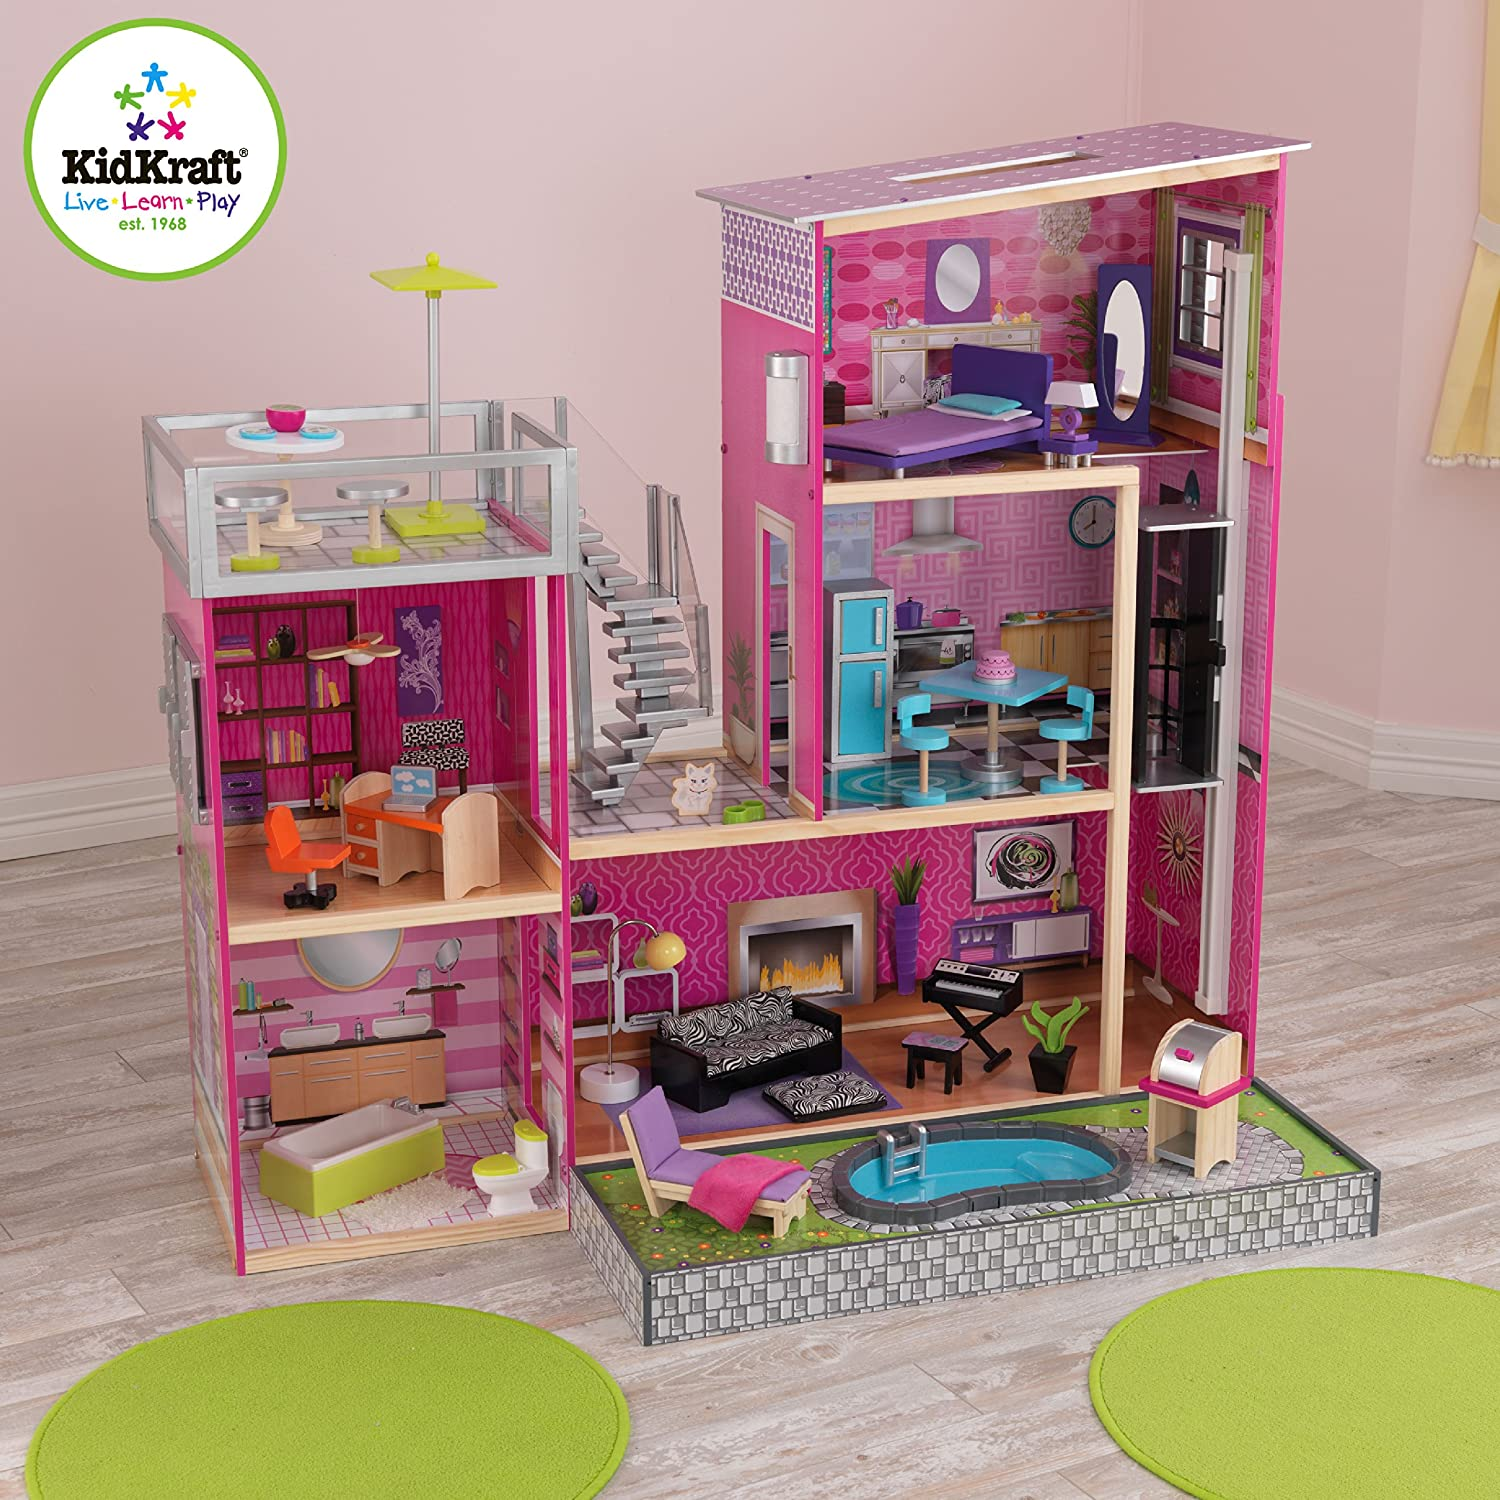 Kids craft doll house - Amazon Com Kidkraft Girl S Uptown Dollhouse With Furniture Toys Games